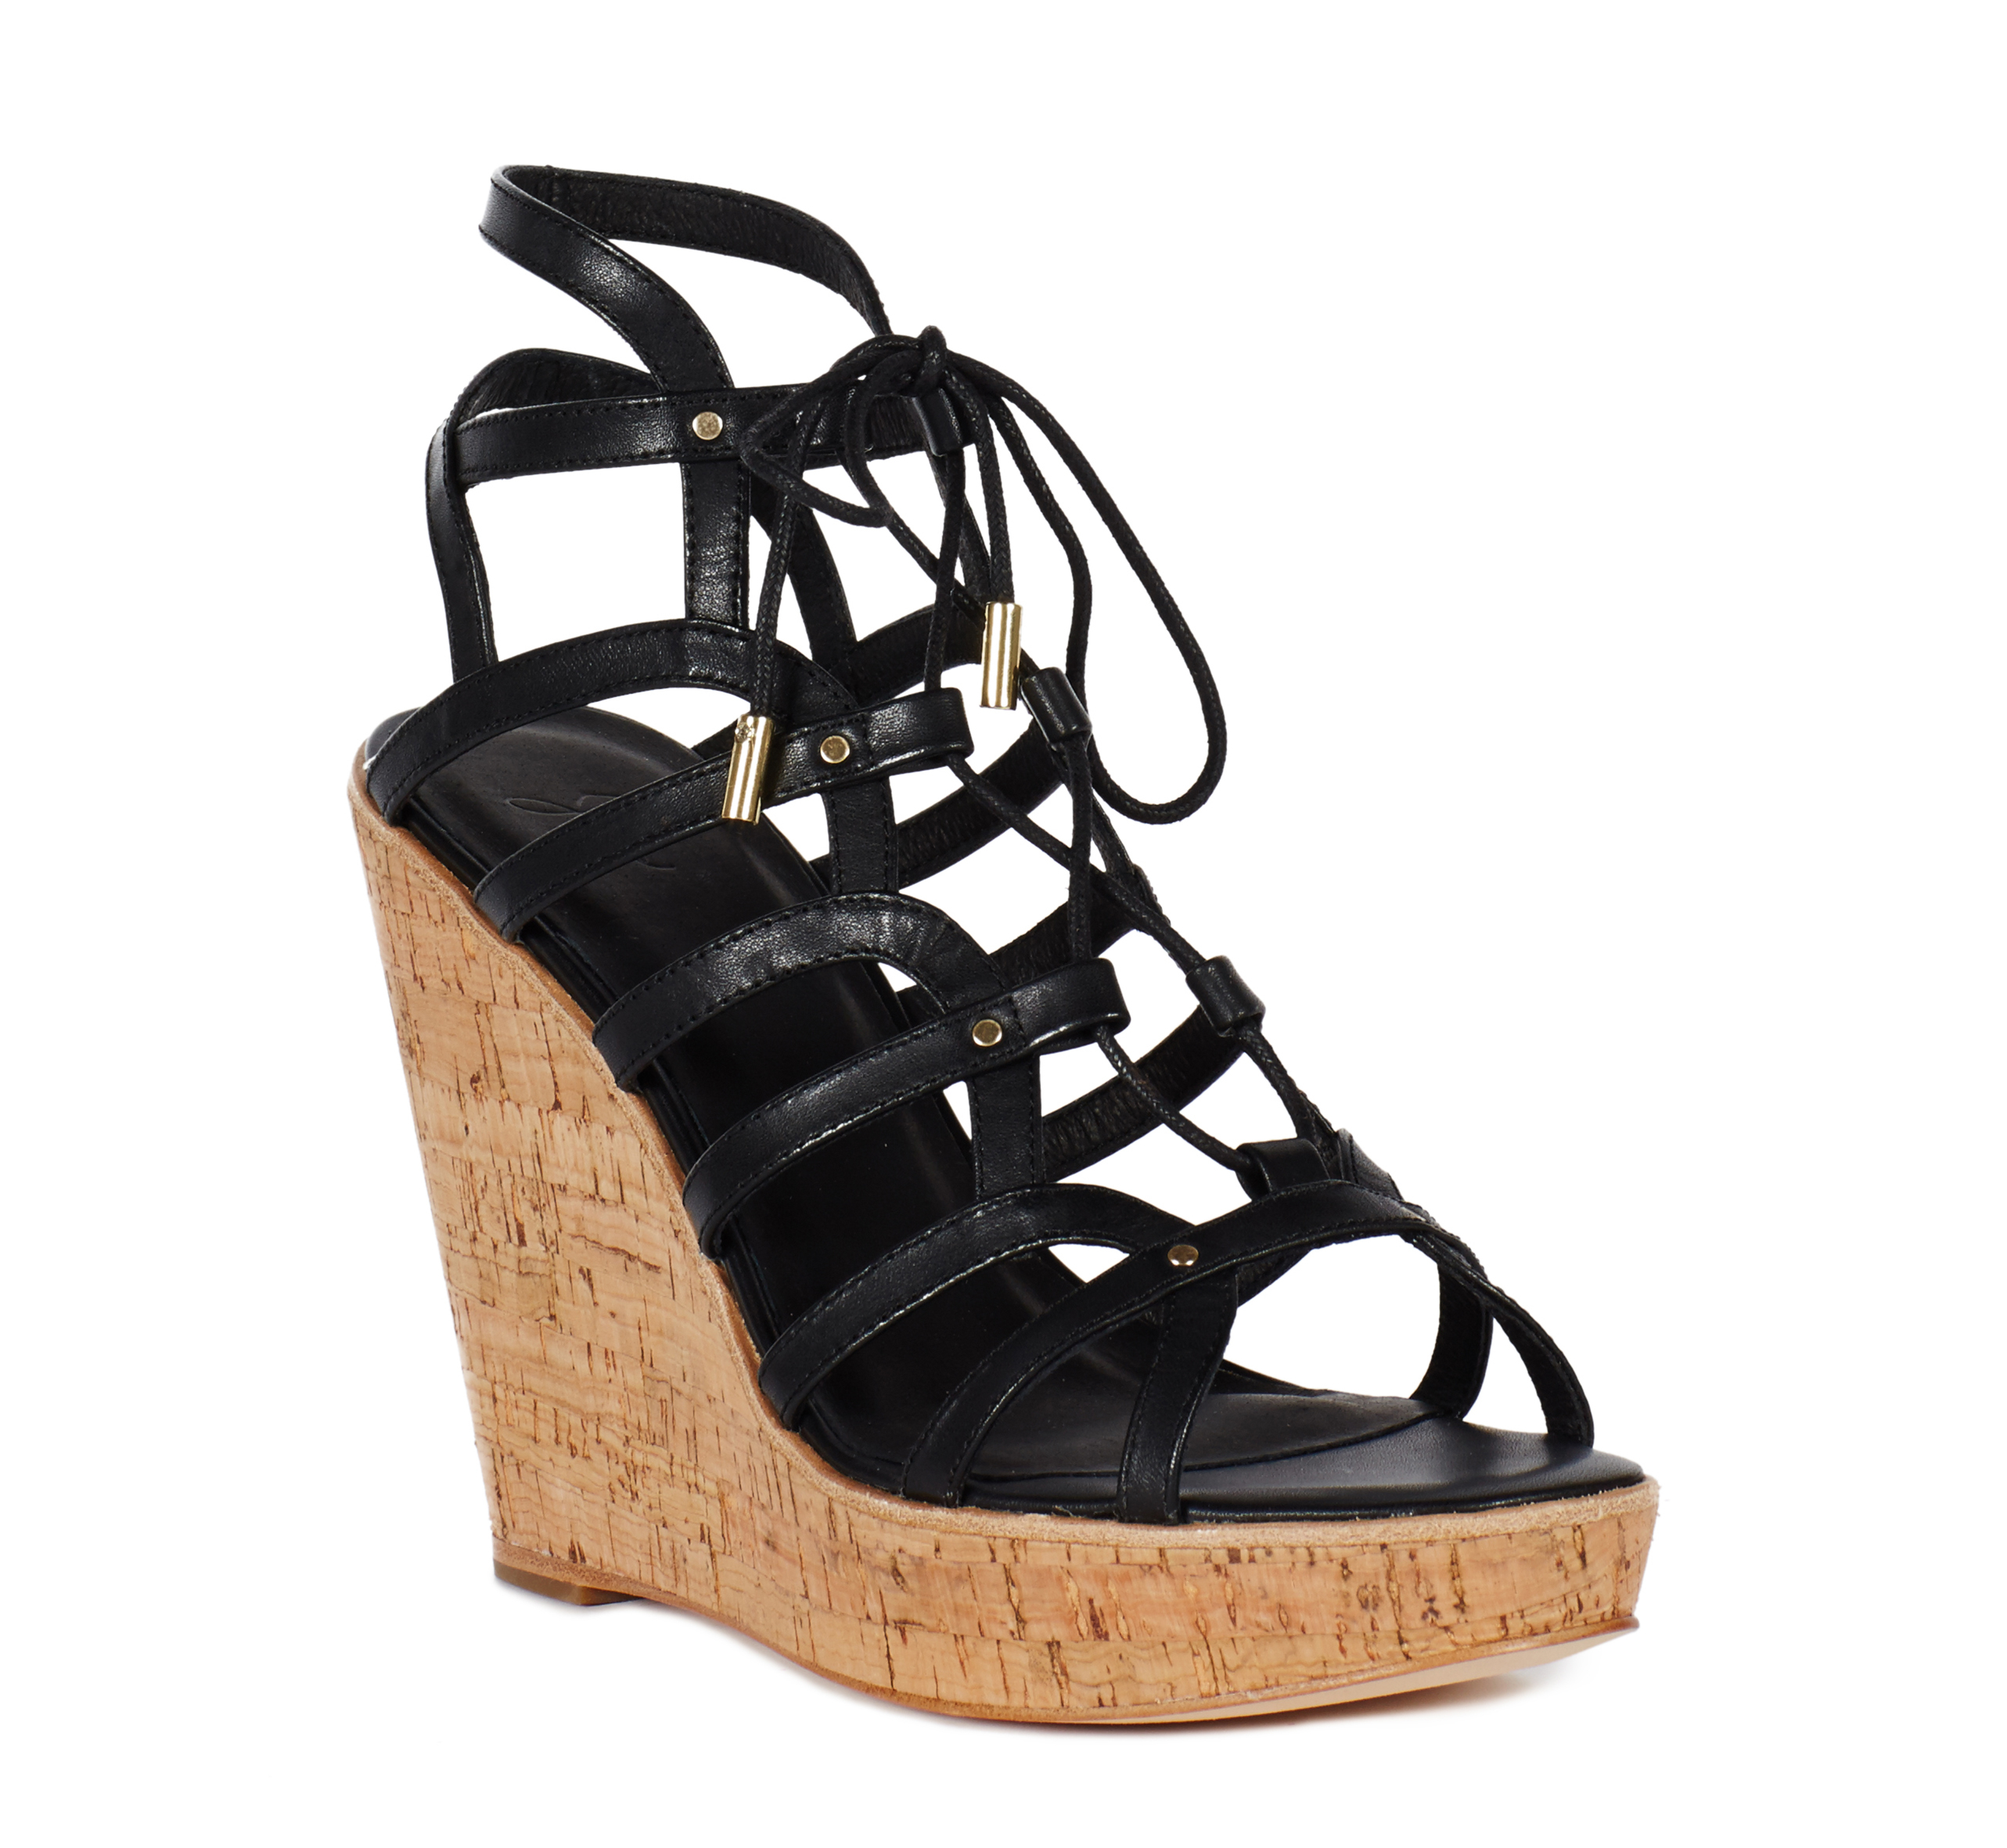 f61eaa4b520e Lyst - Joie Larissa Wedge Sandals in Black